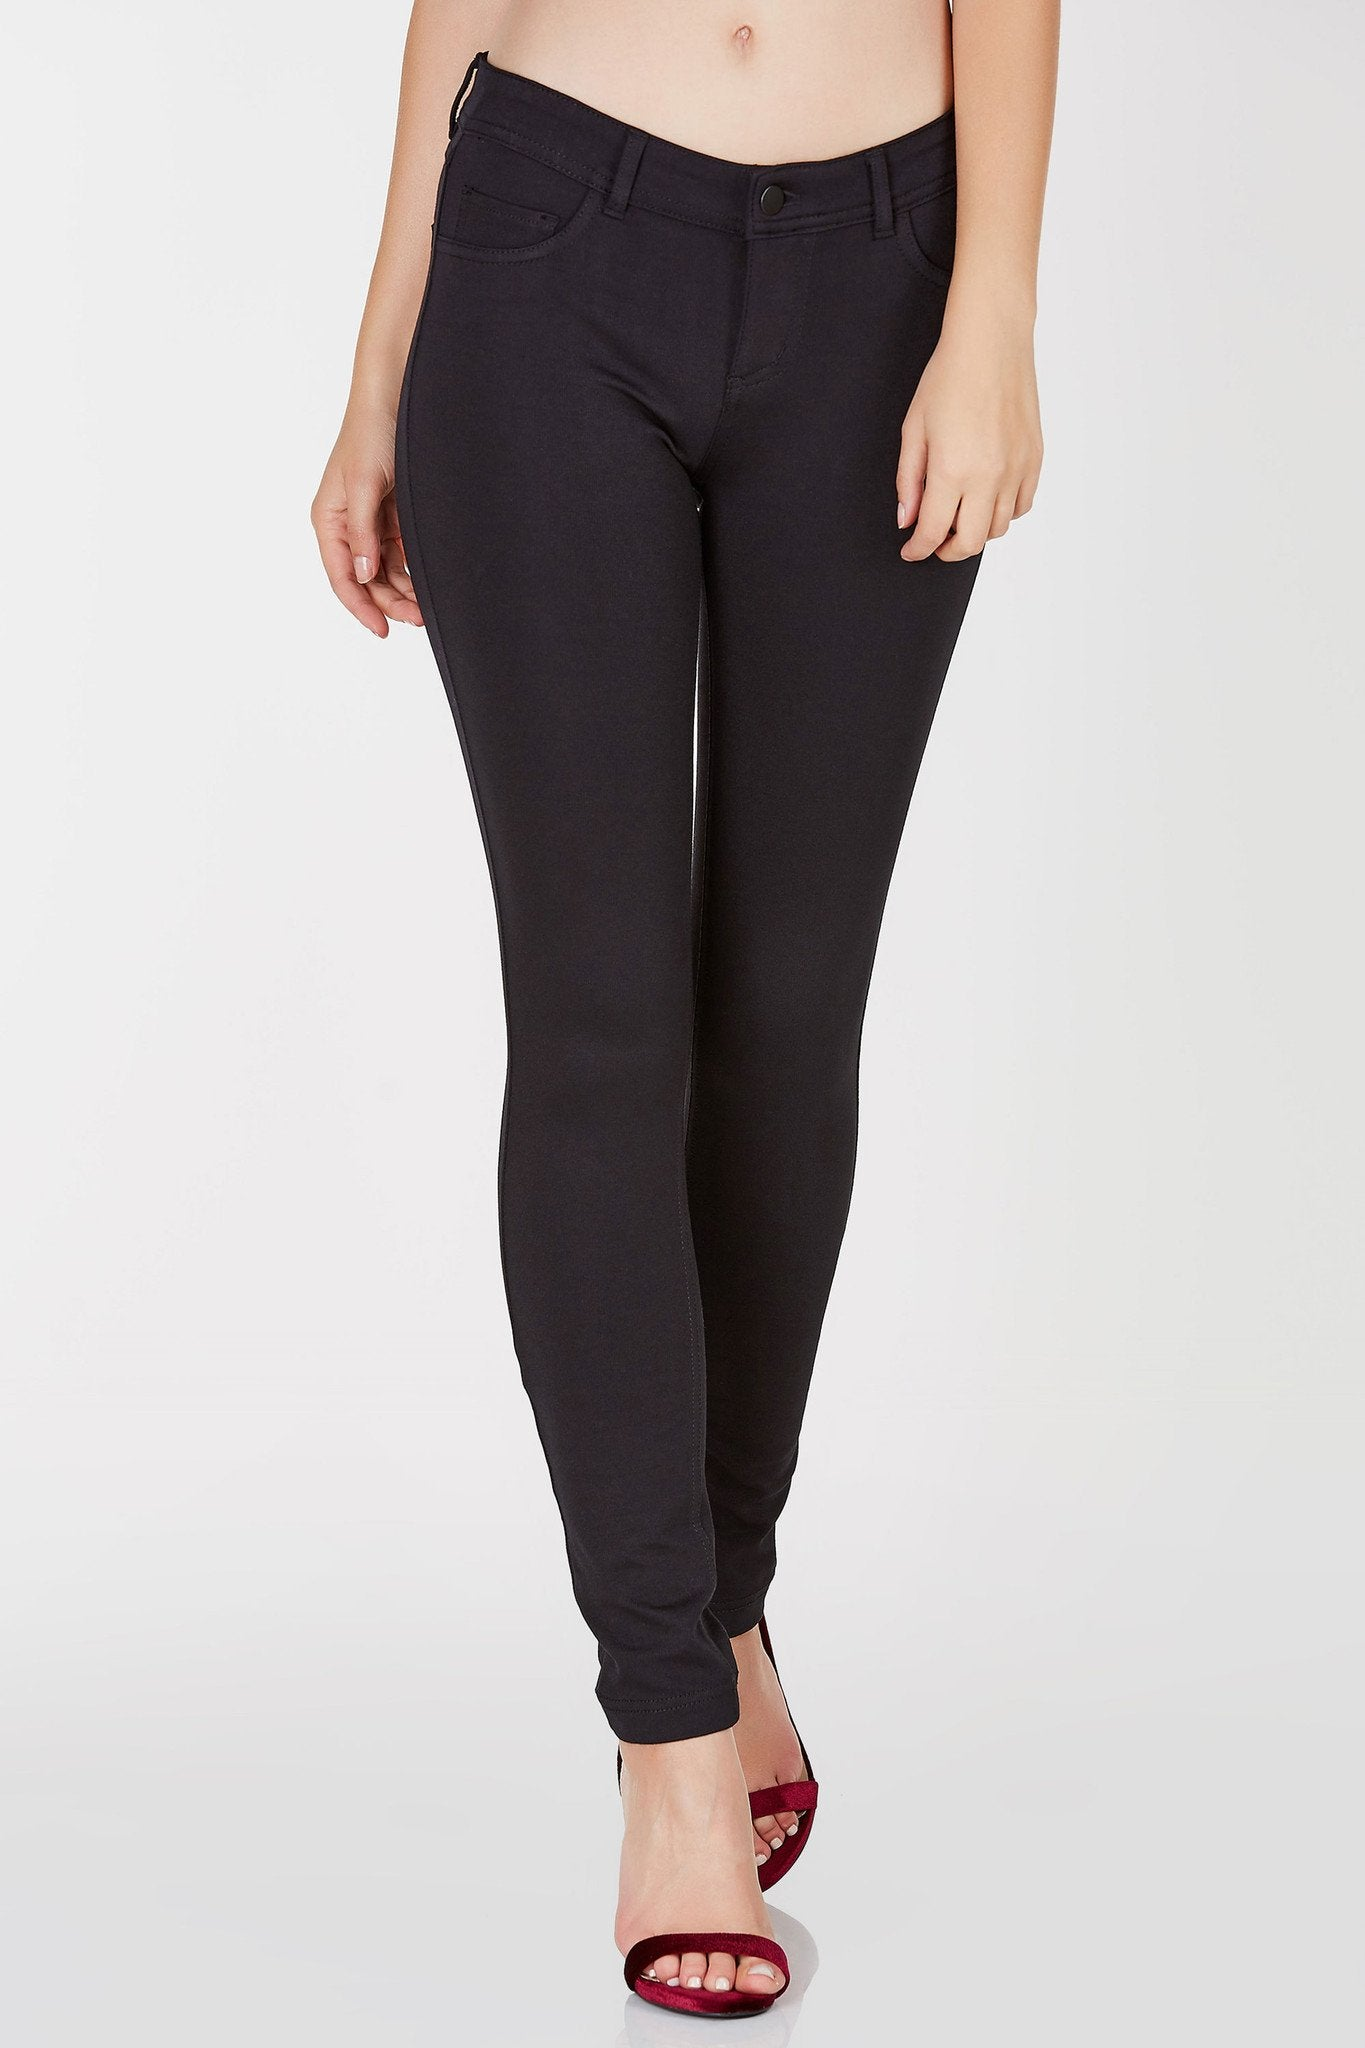 An awesome pair of stretchy jeggings. These jeggings have two functional pockets on the back and a single zipper and button for fit and closure.